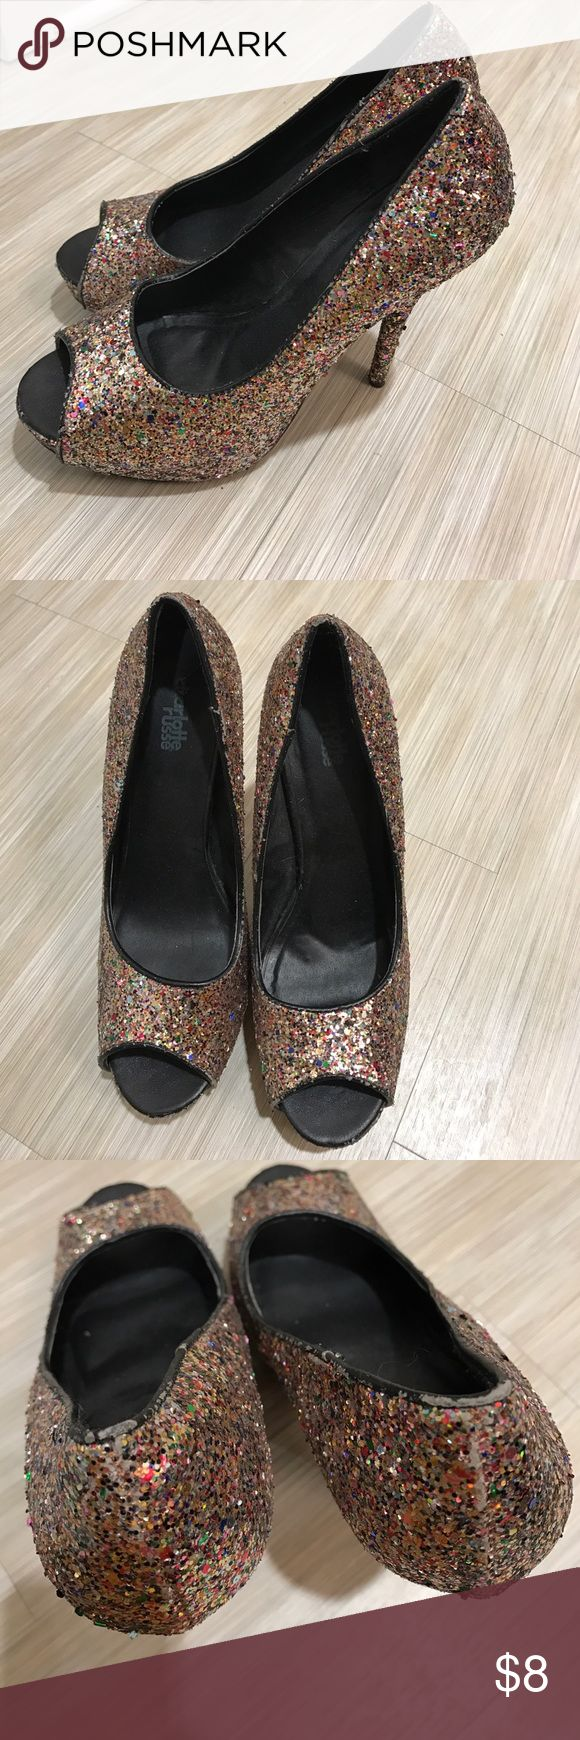 Charlotte Russe Rainbow Glitter Platform Heels Adorable peep toe heels from Charlotte! Some minor signs of wear and tear around ankle, but otherwise great. Charlotte Russe's platform heels are very comfortable! Charlotte Russe Shoes Heels